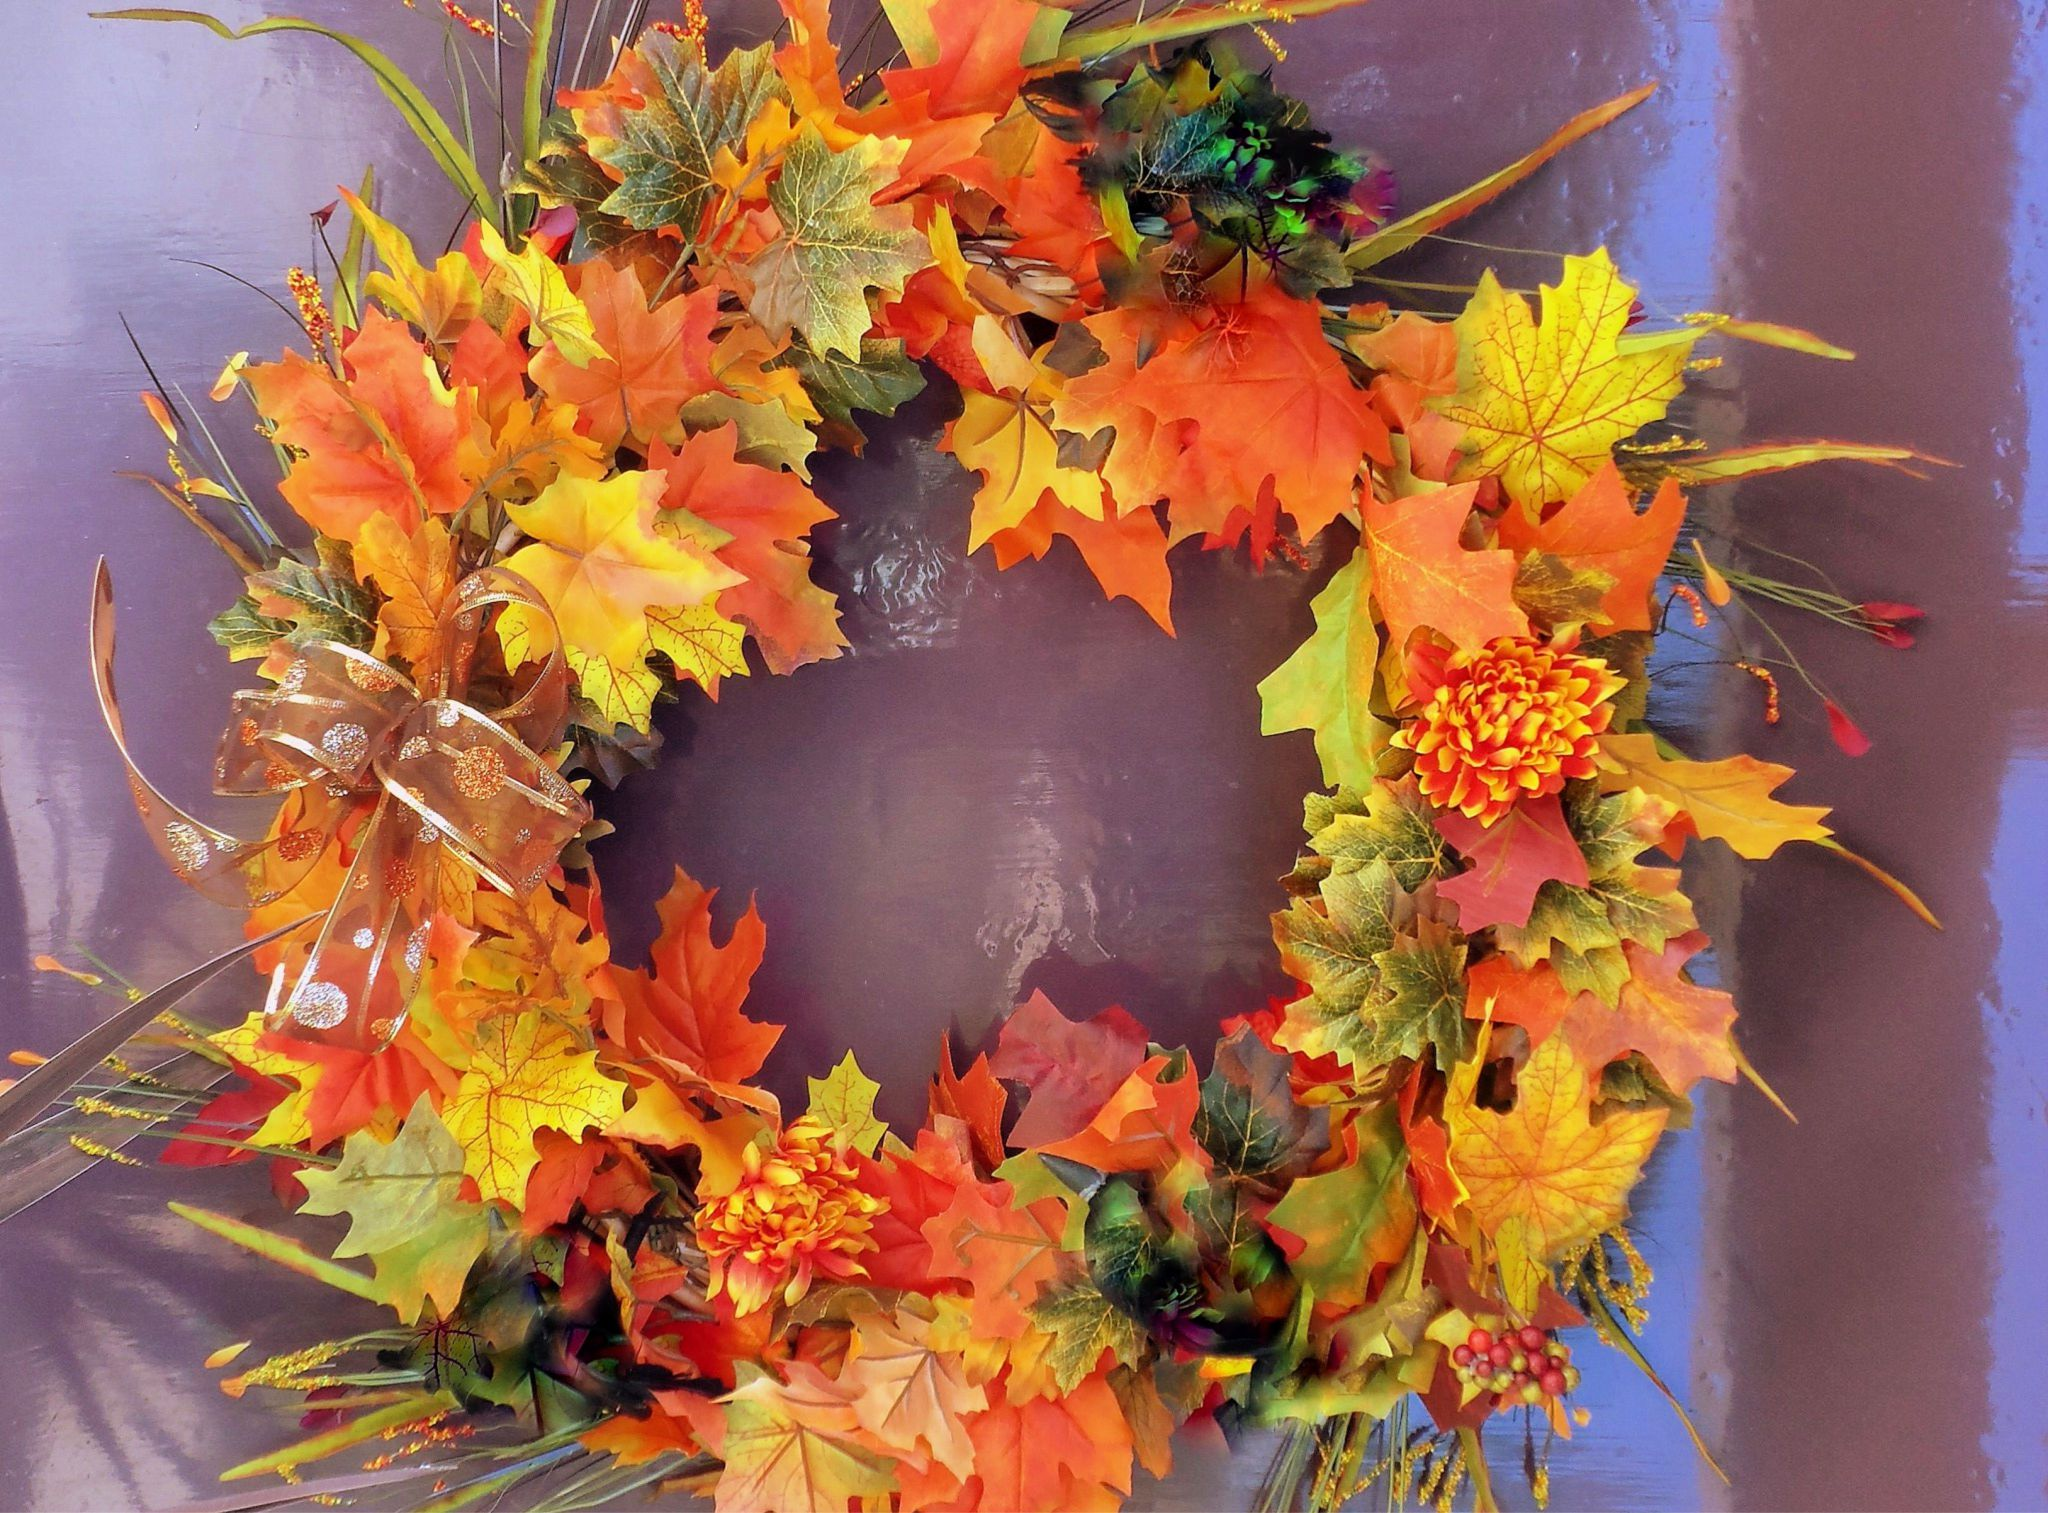 How To Make An Easy And Festive Fall Wreath